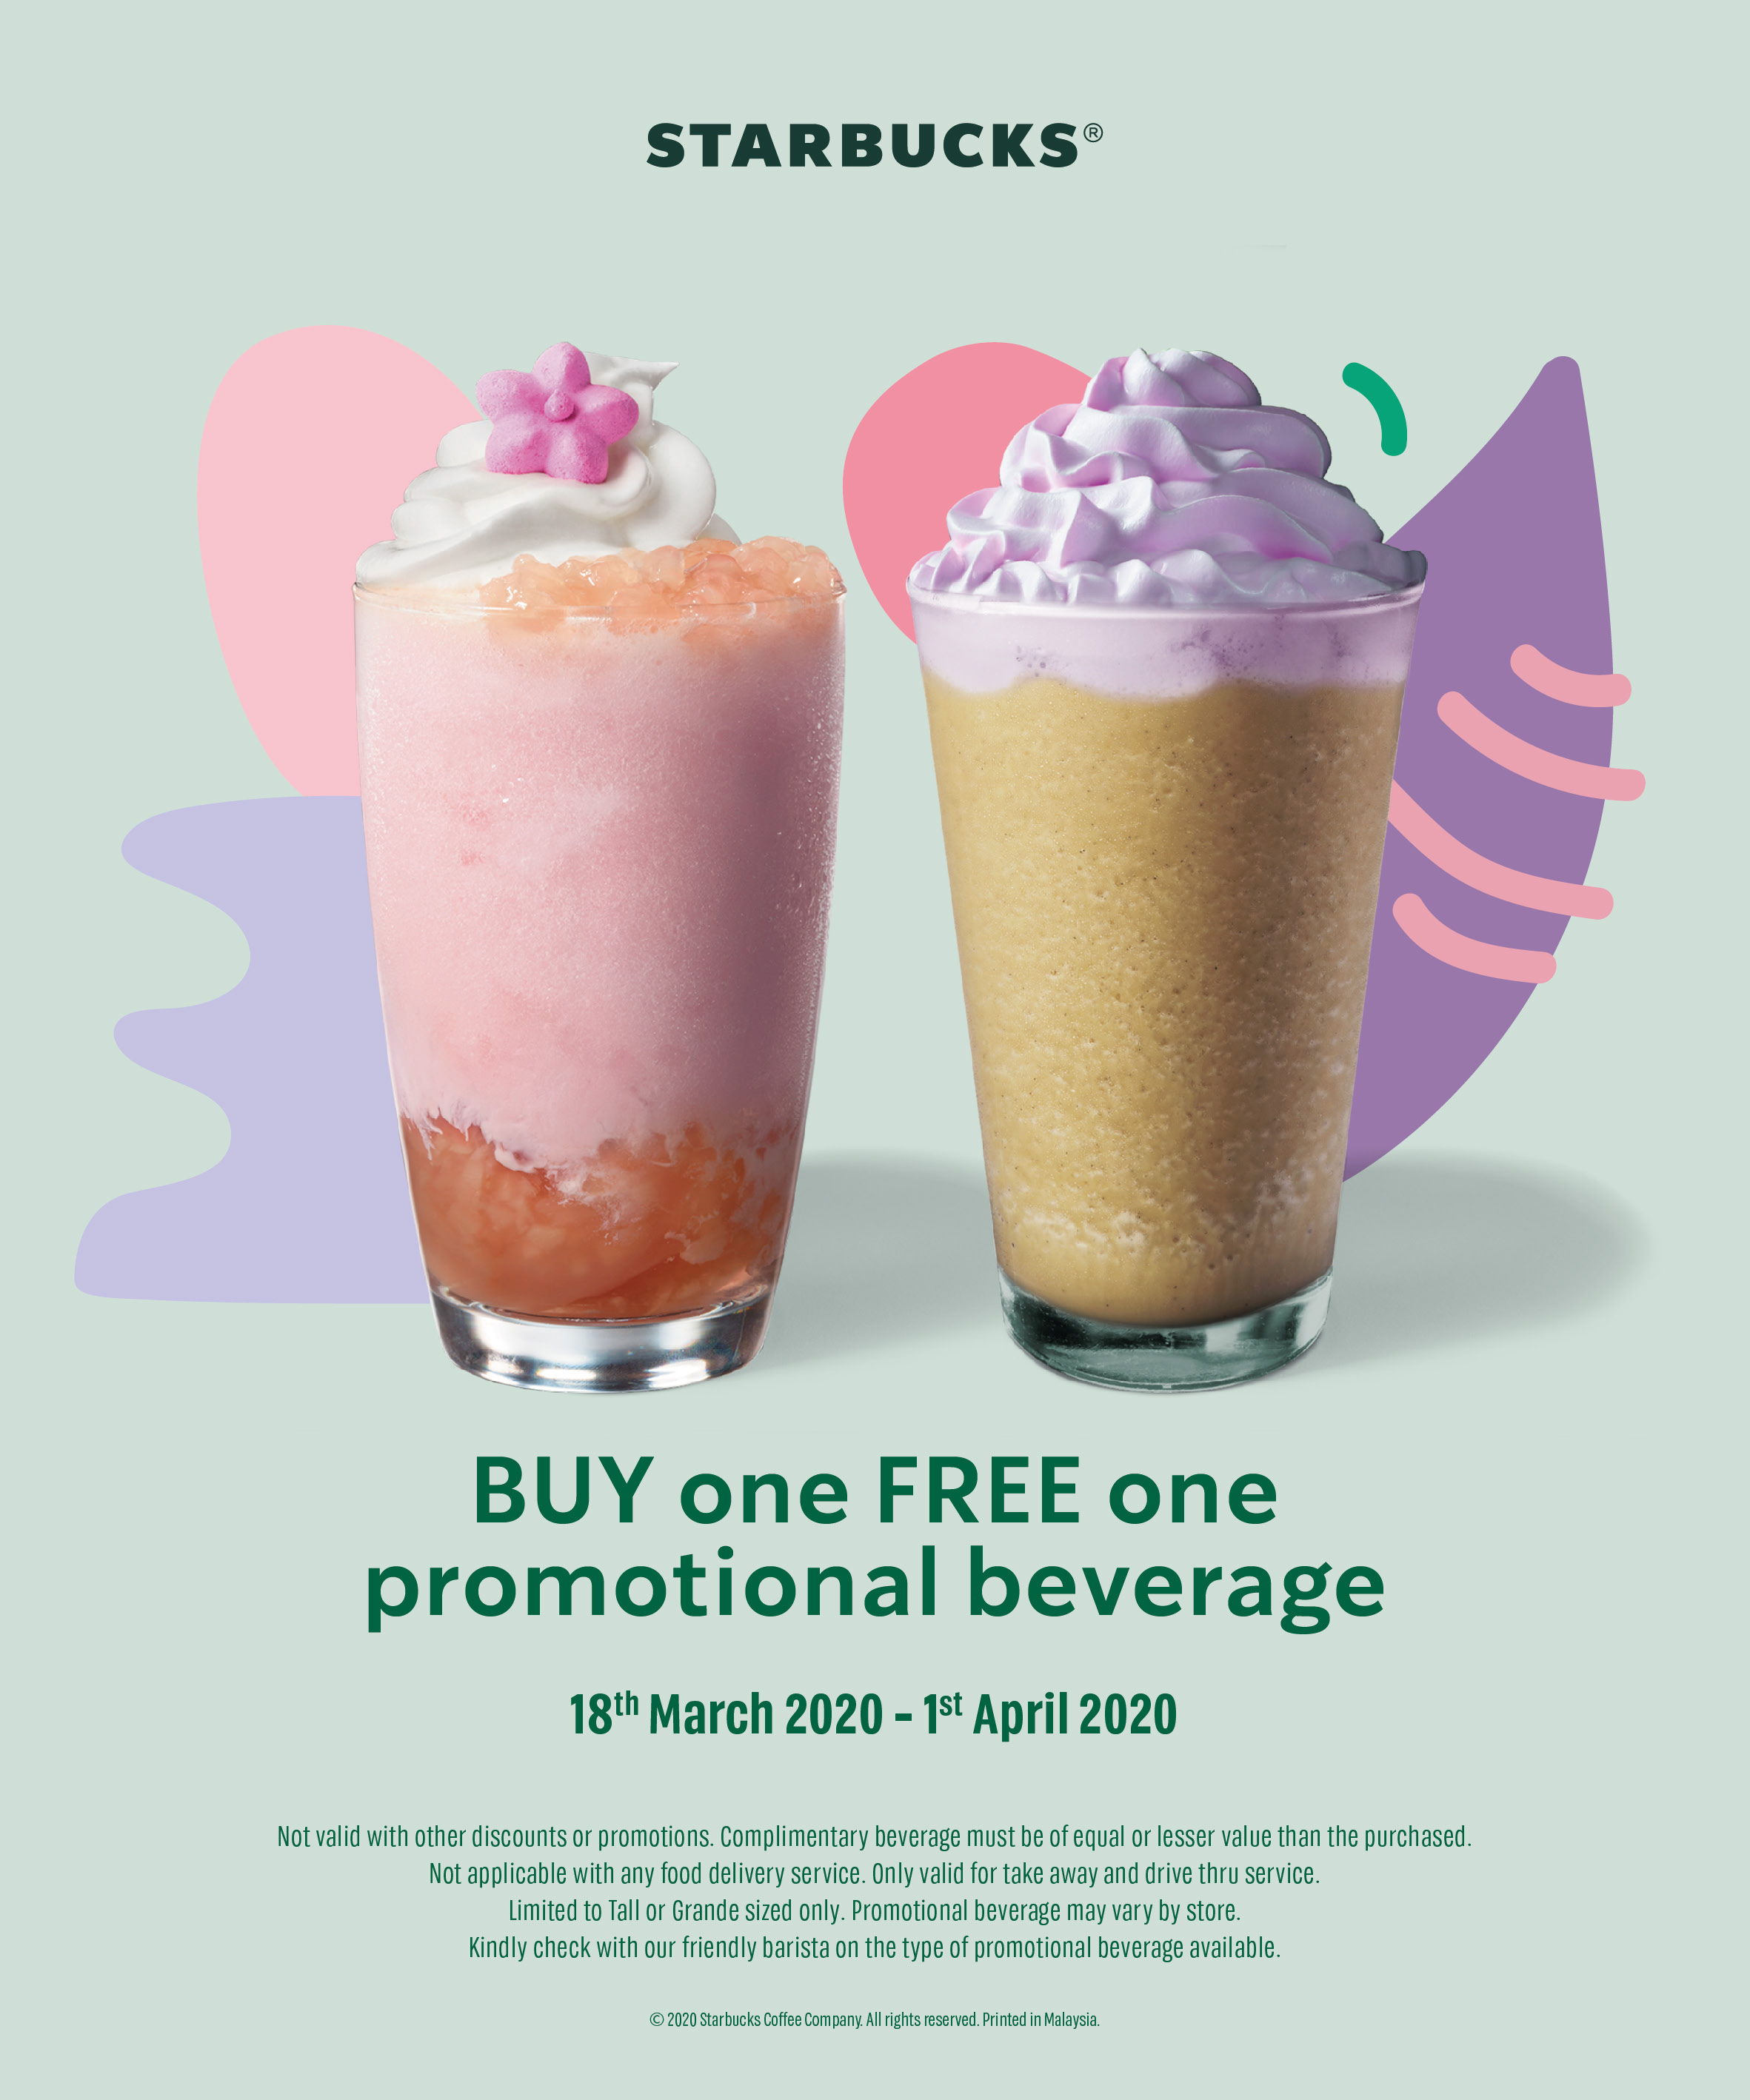 starbucks-buy-1-free-1